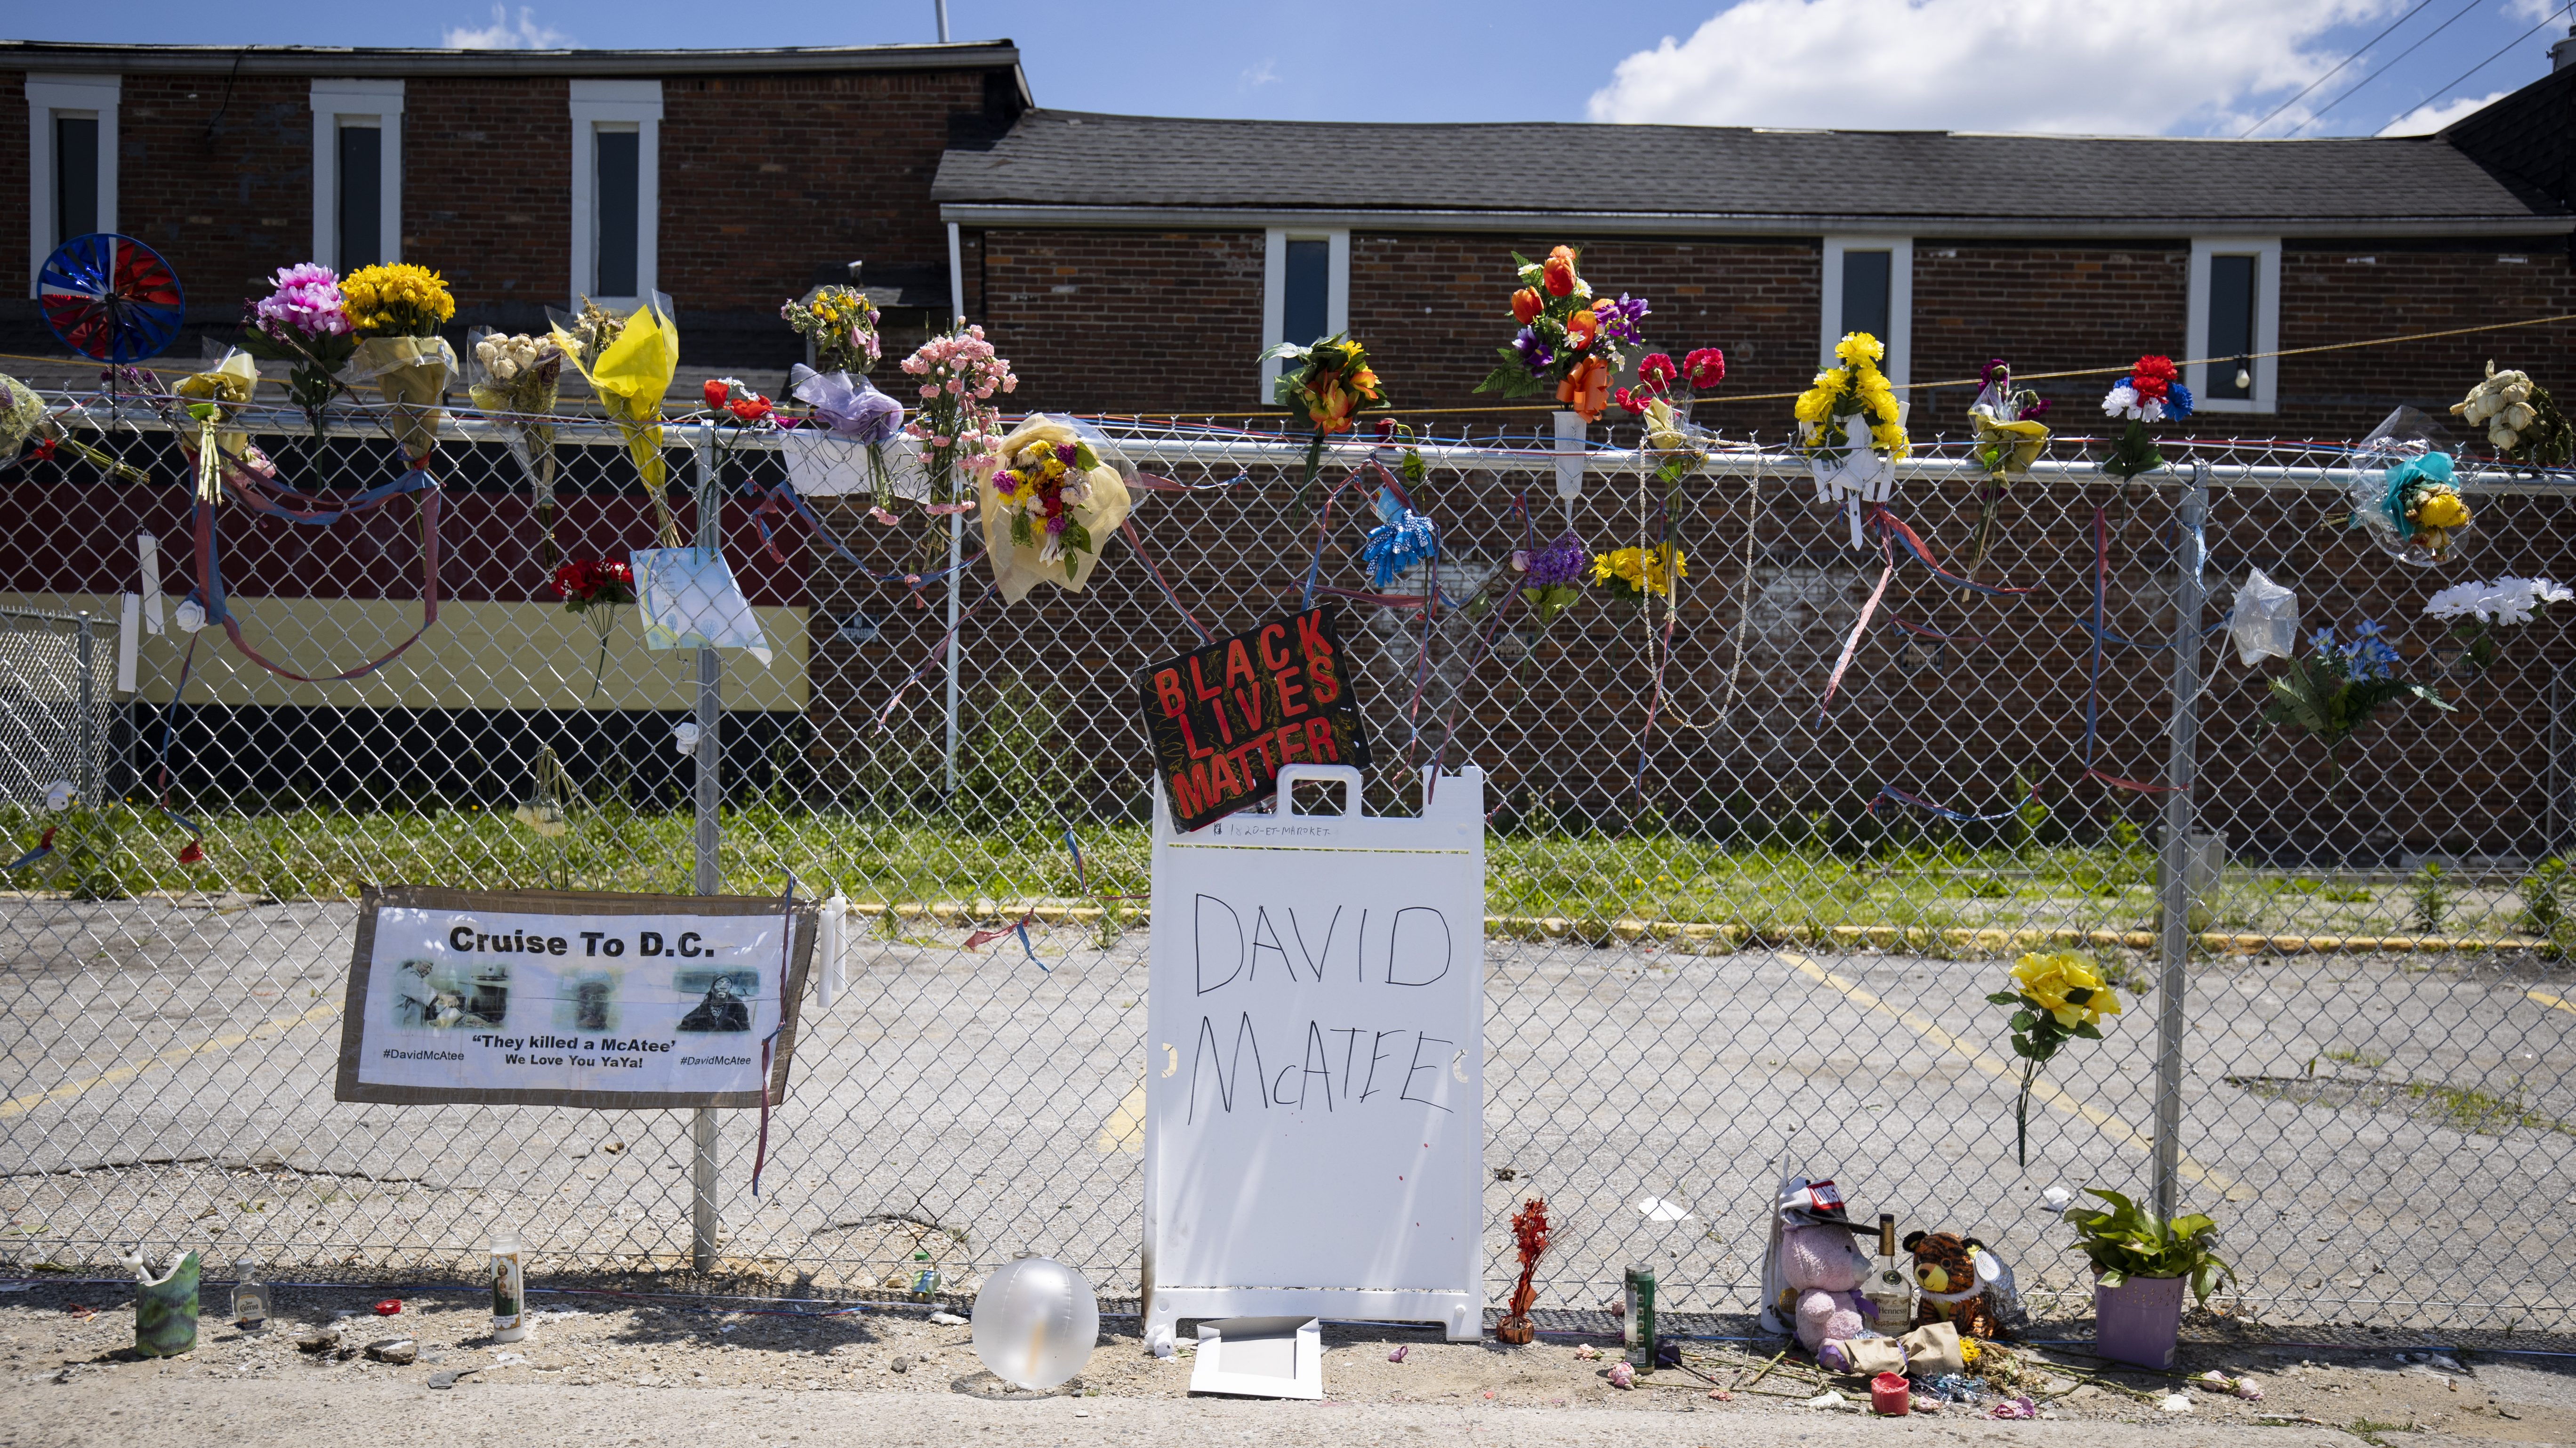 A memorial for David McAtee outside the location where he was shot and killed